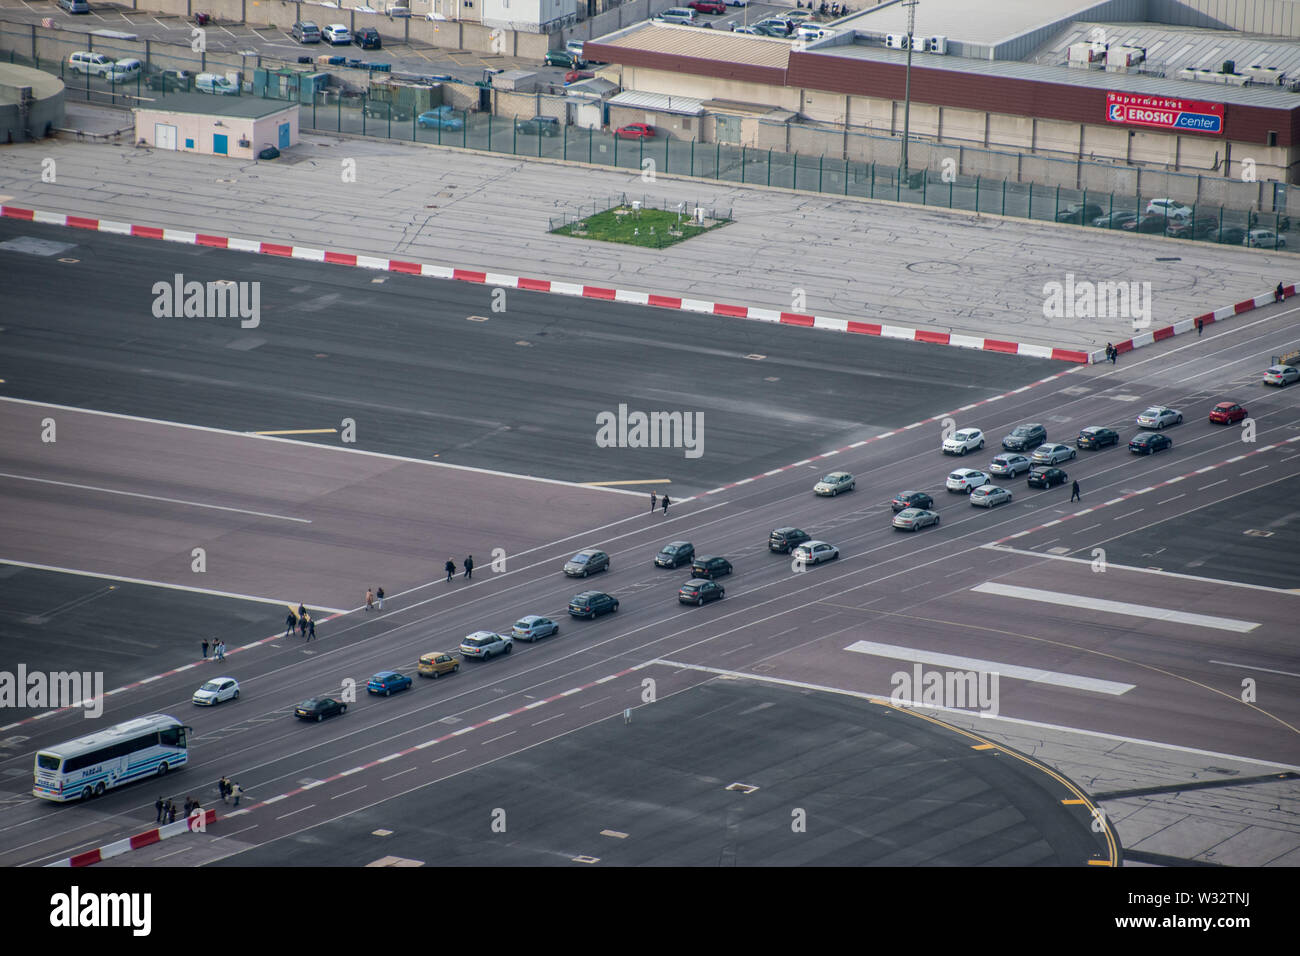 One of the few locations in the world with a public road crossing an active runway in Gibraltar - Stock Image